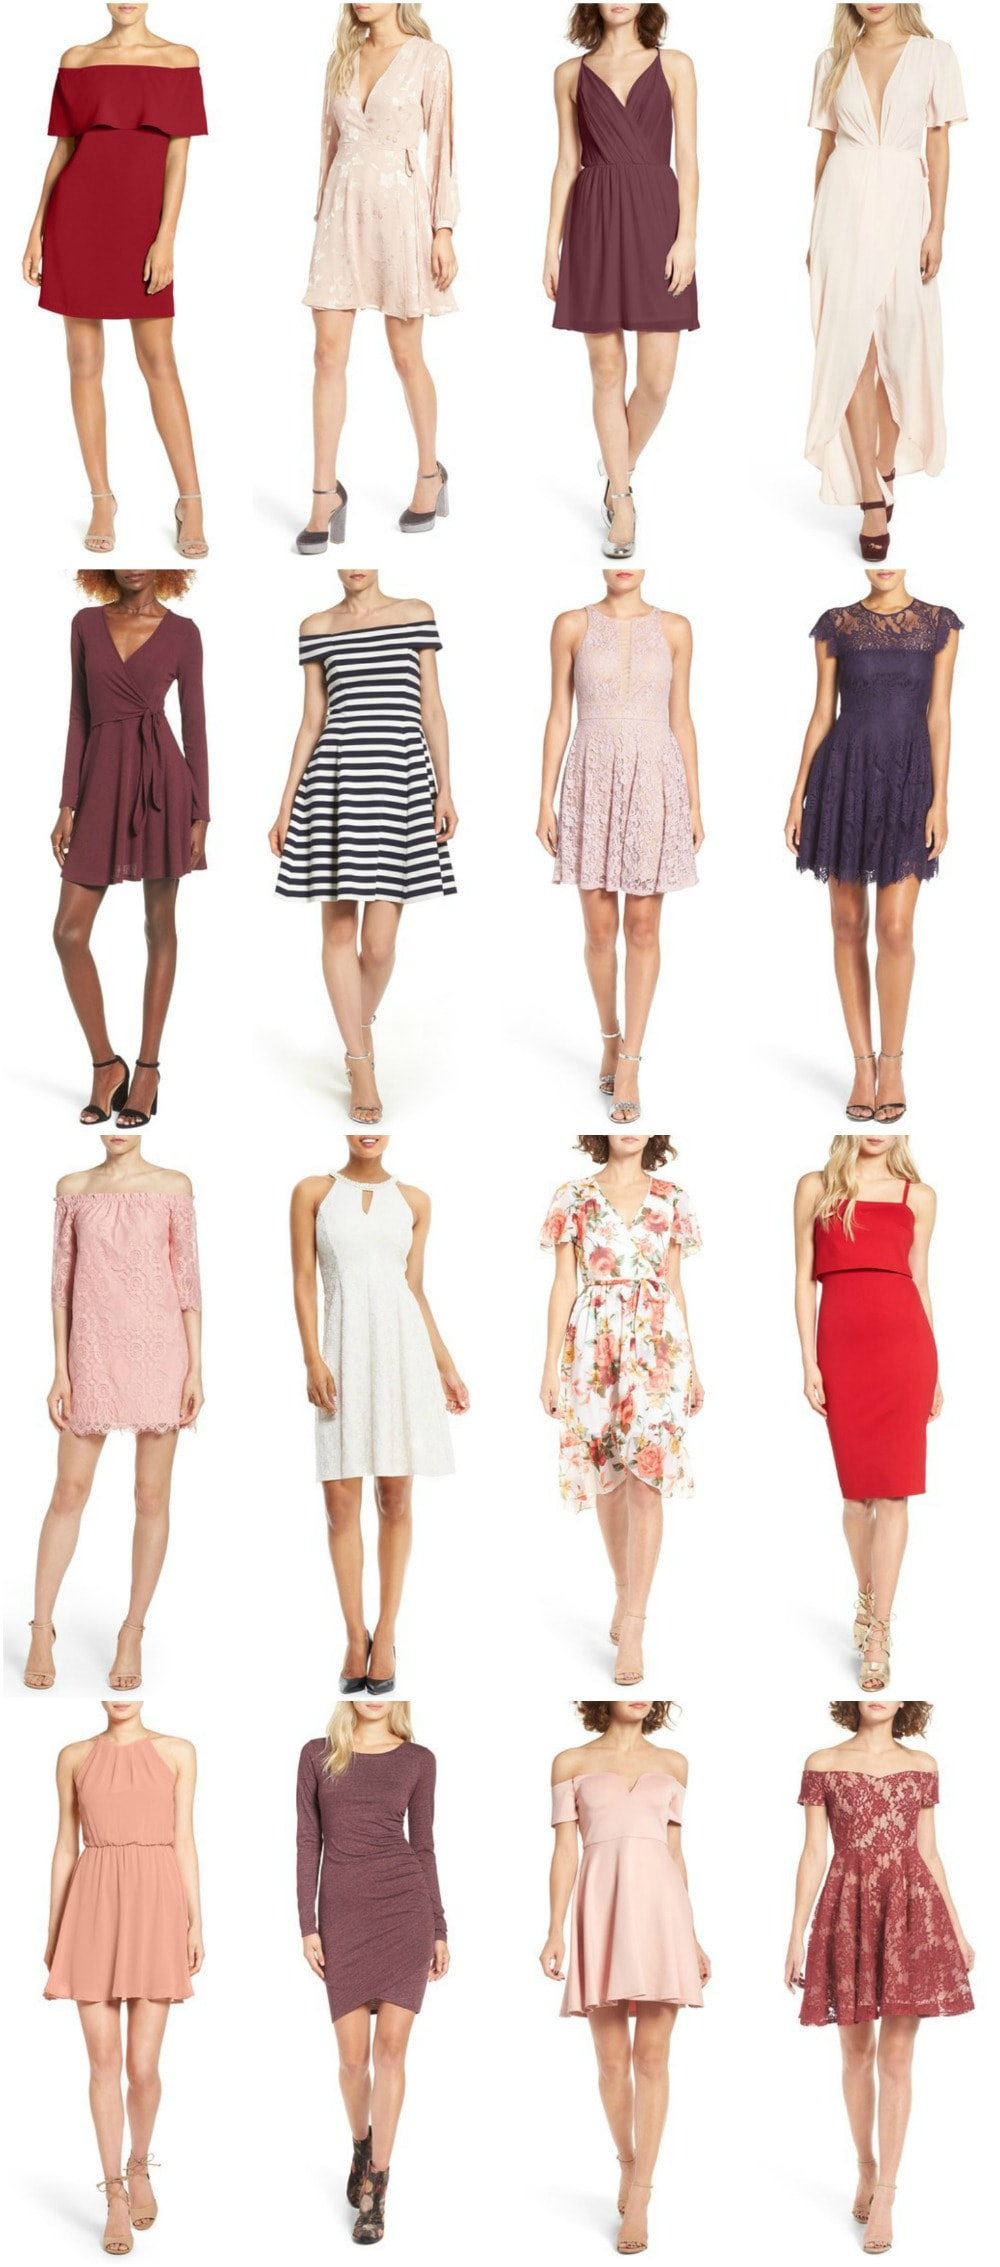 cutest-affordable-date-night-dresses-valentines-day-under-100-dollars